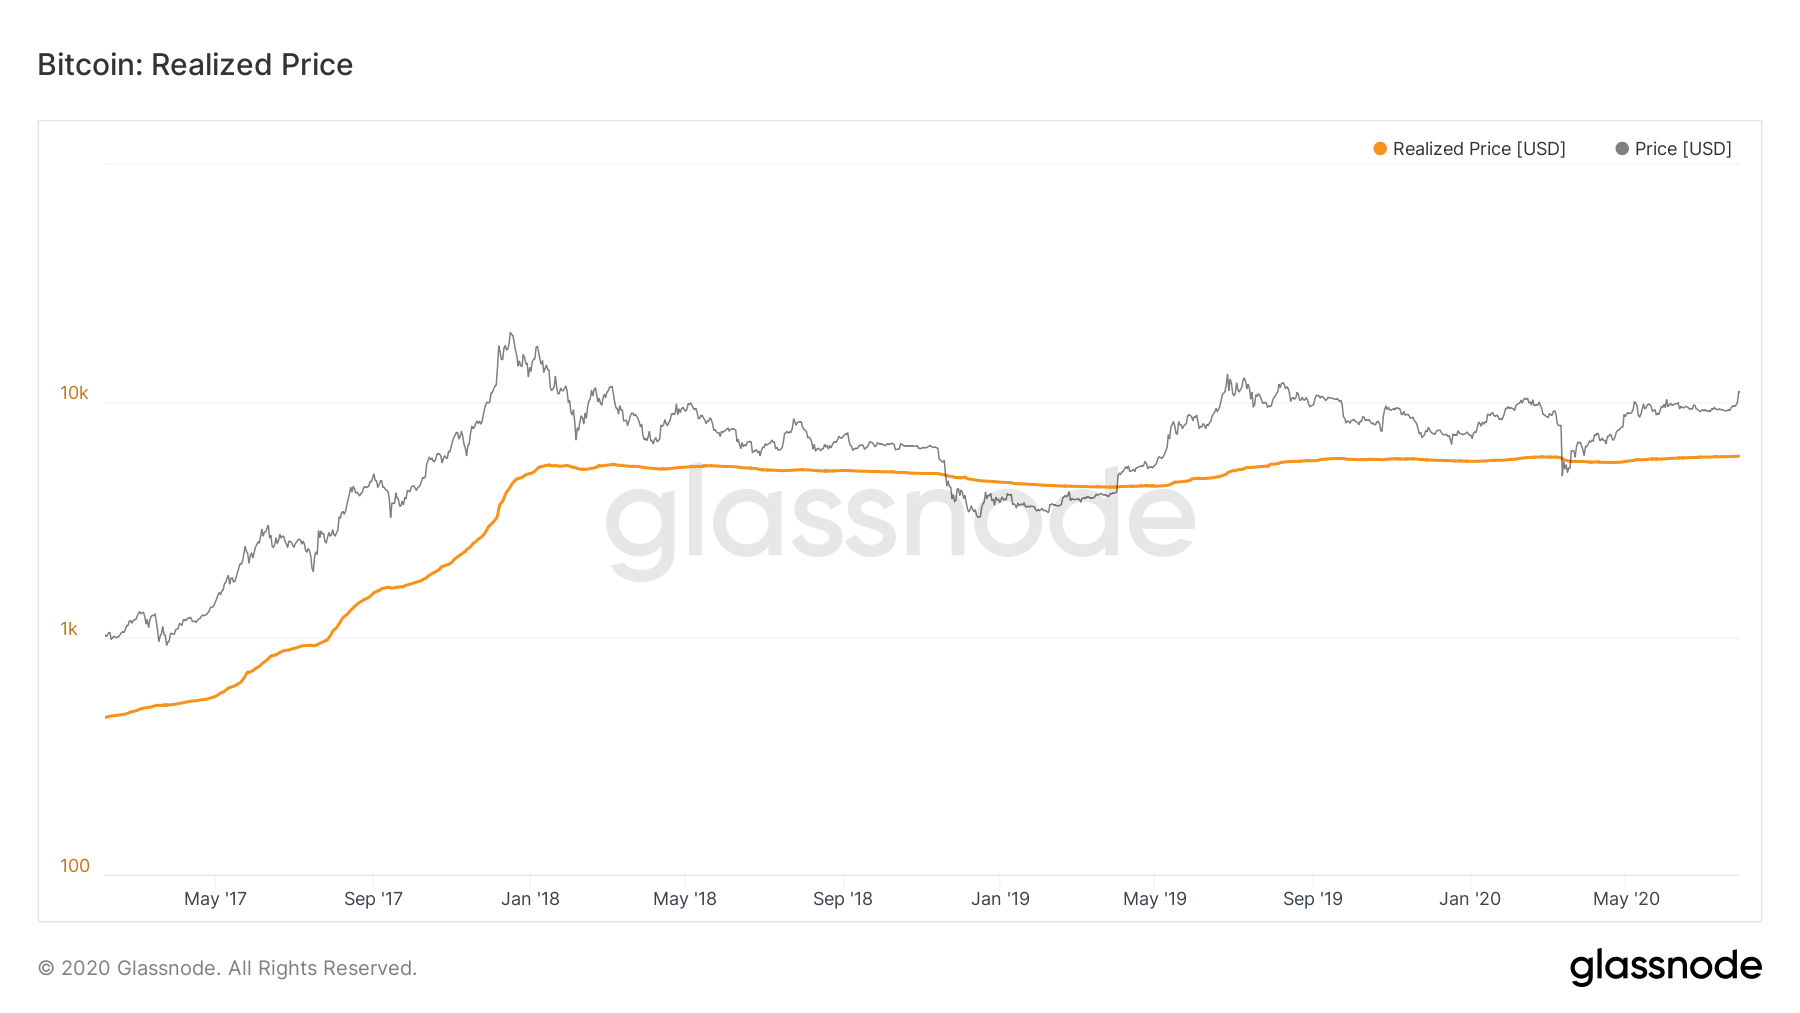 Bitcoin price versus realized price. Source: Glassnode.